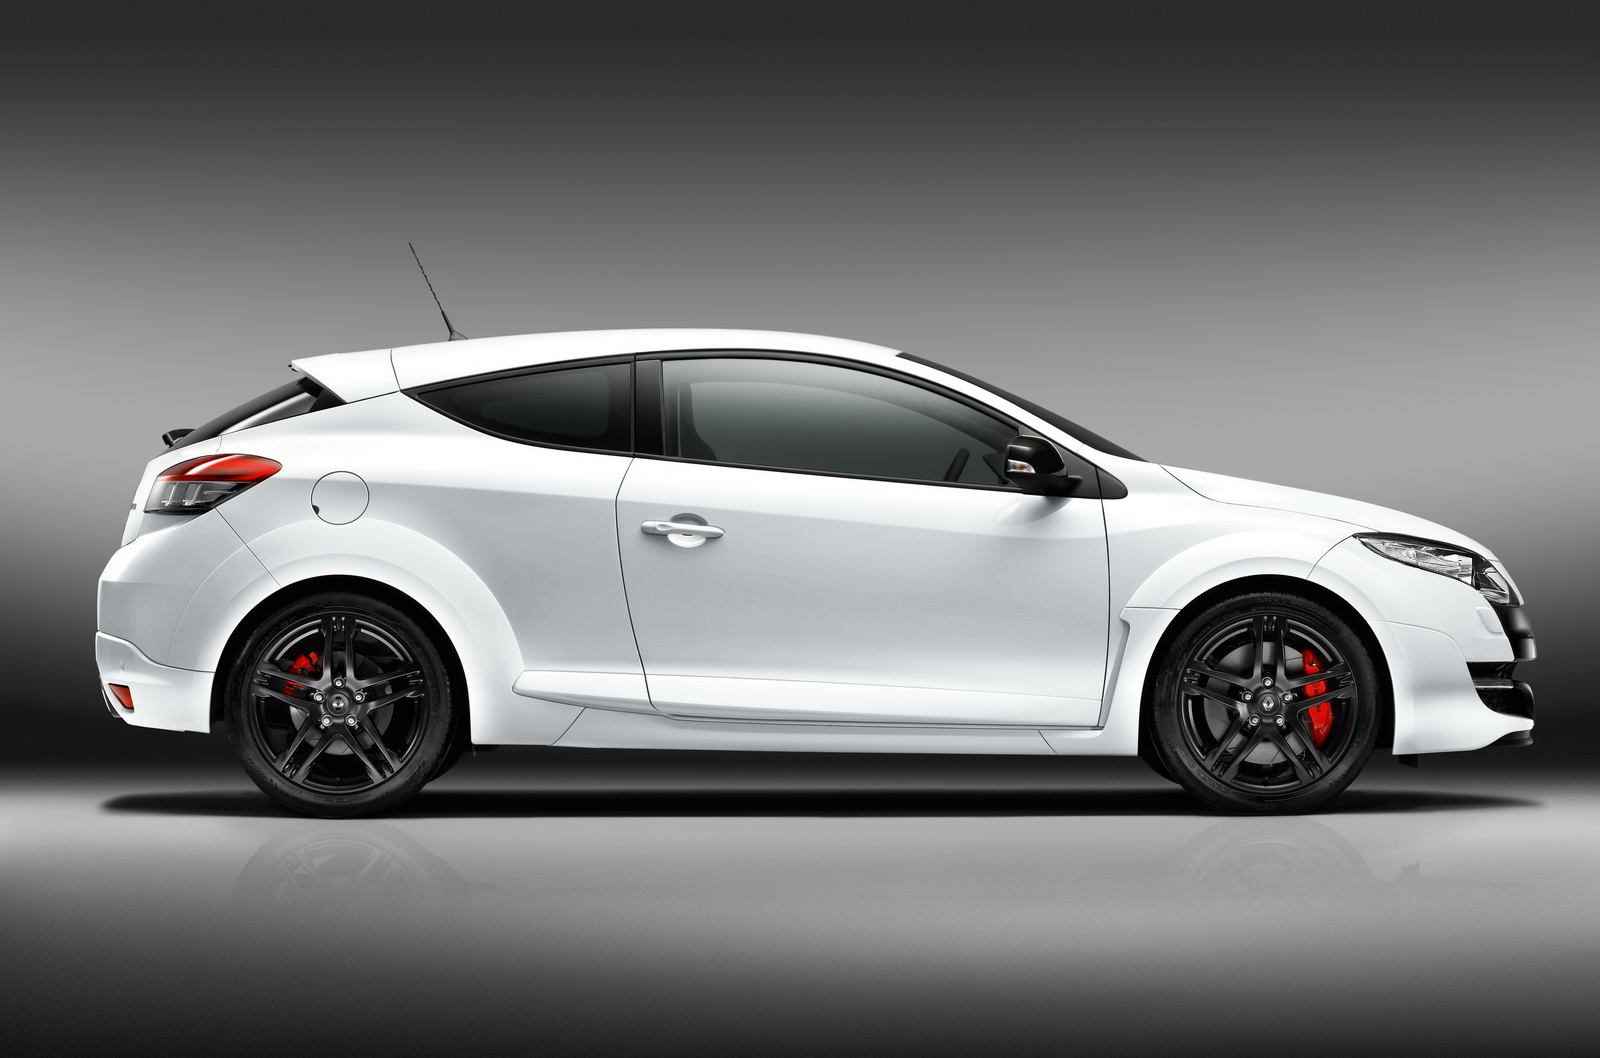 2012 renault megane iii rs dark cars wallpapers. Black Bedroom Furniture Sets. Home Design Ideas